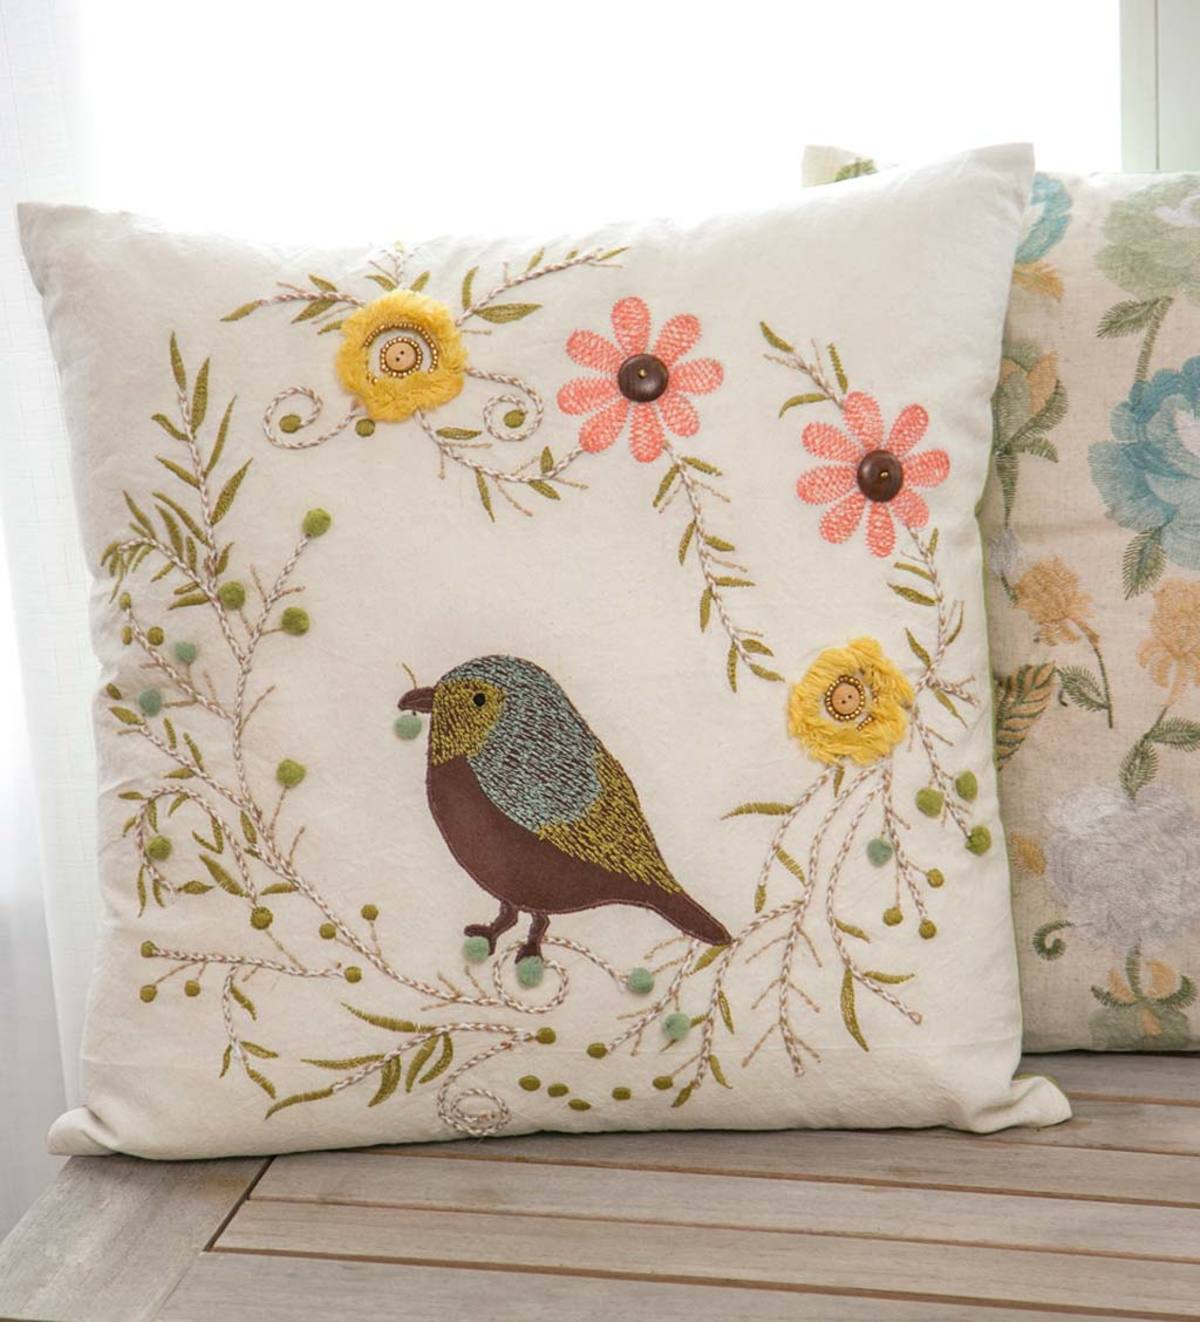 Embroidered Bird And Flowers Throw Pillow Plowhearth